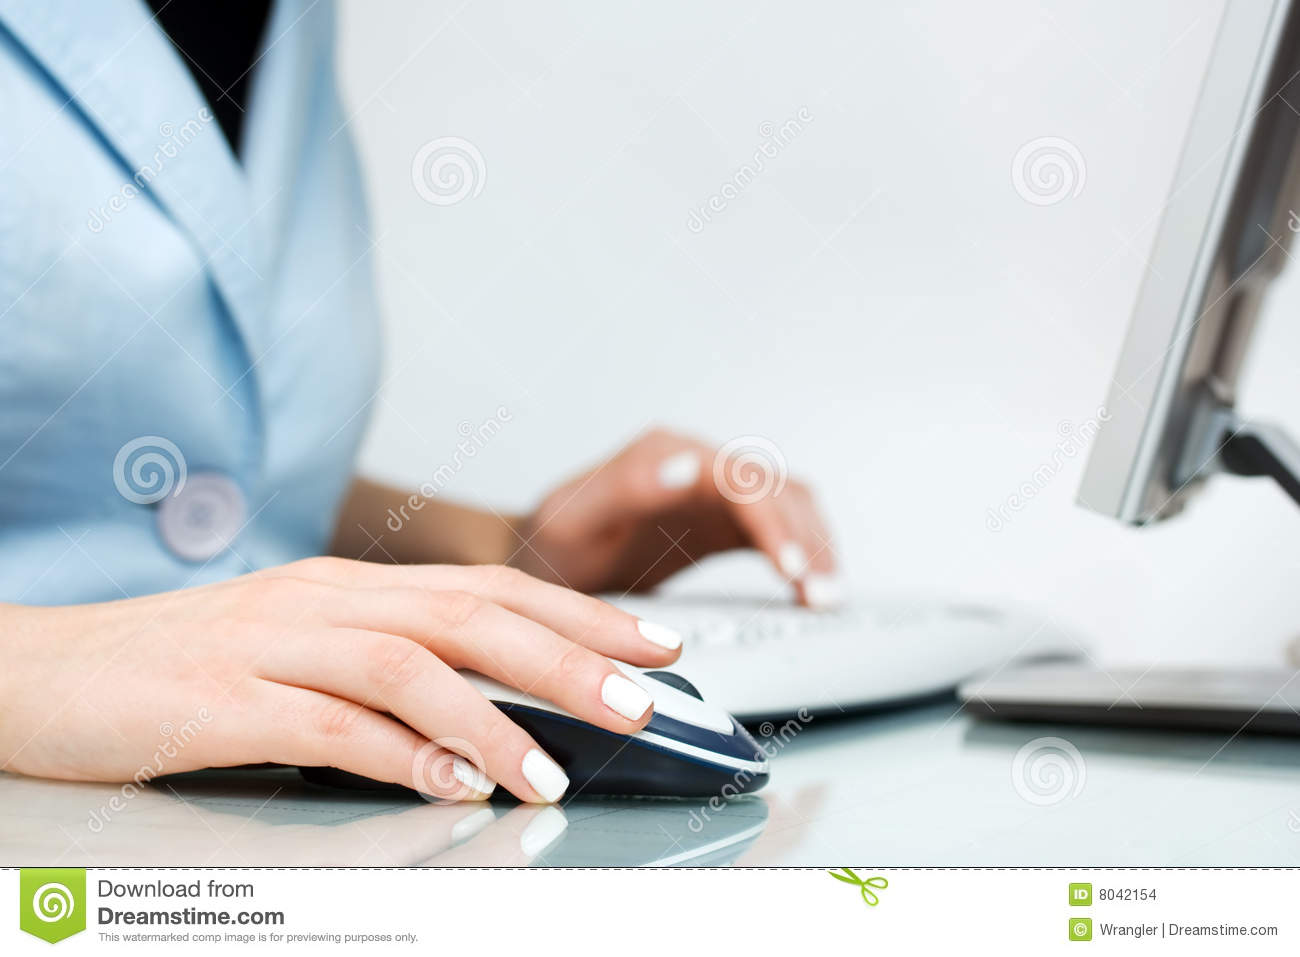 Woman using computer mouse and keyboard